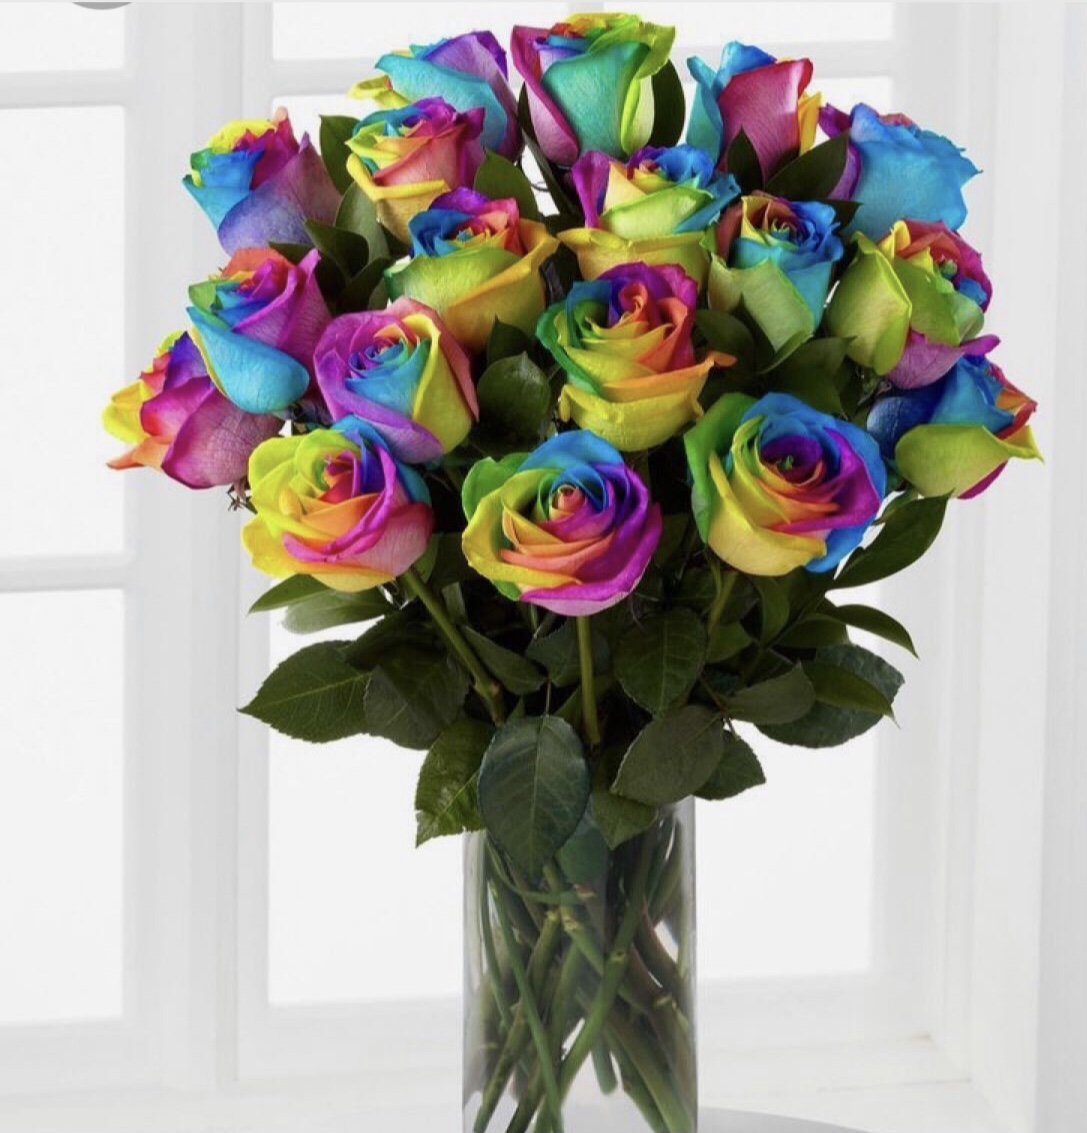 Valentines Day Gift Ideas for Lockdown - rainbow roses